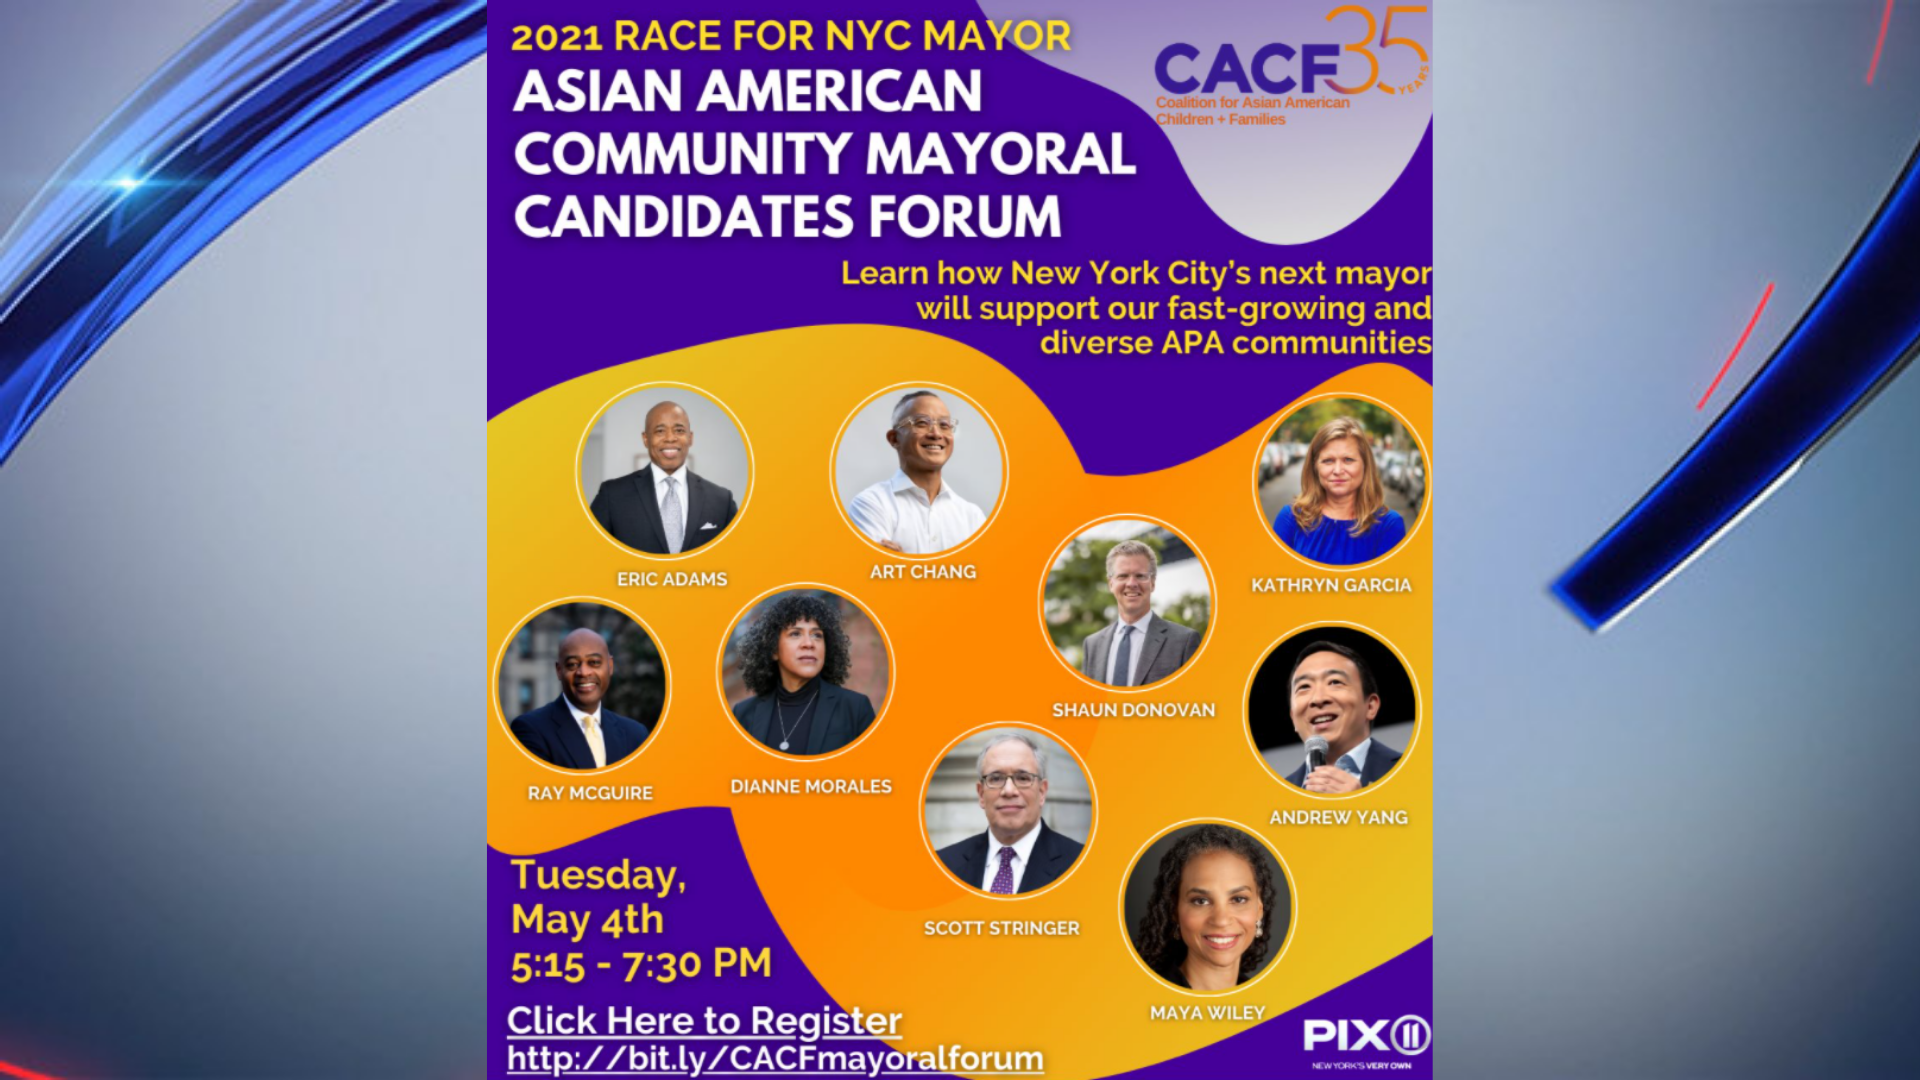 asian american community mayoral candidates forum